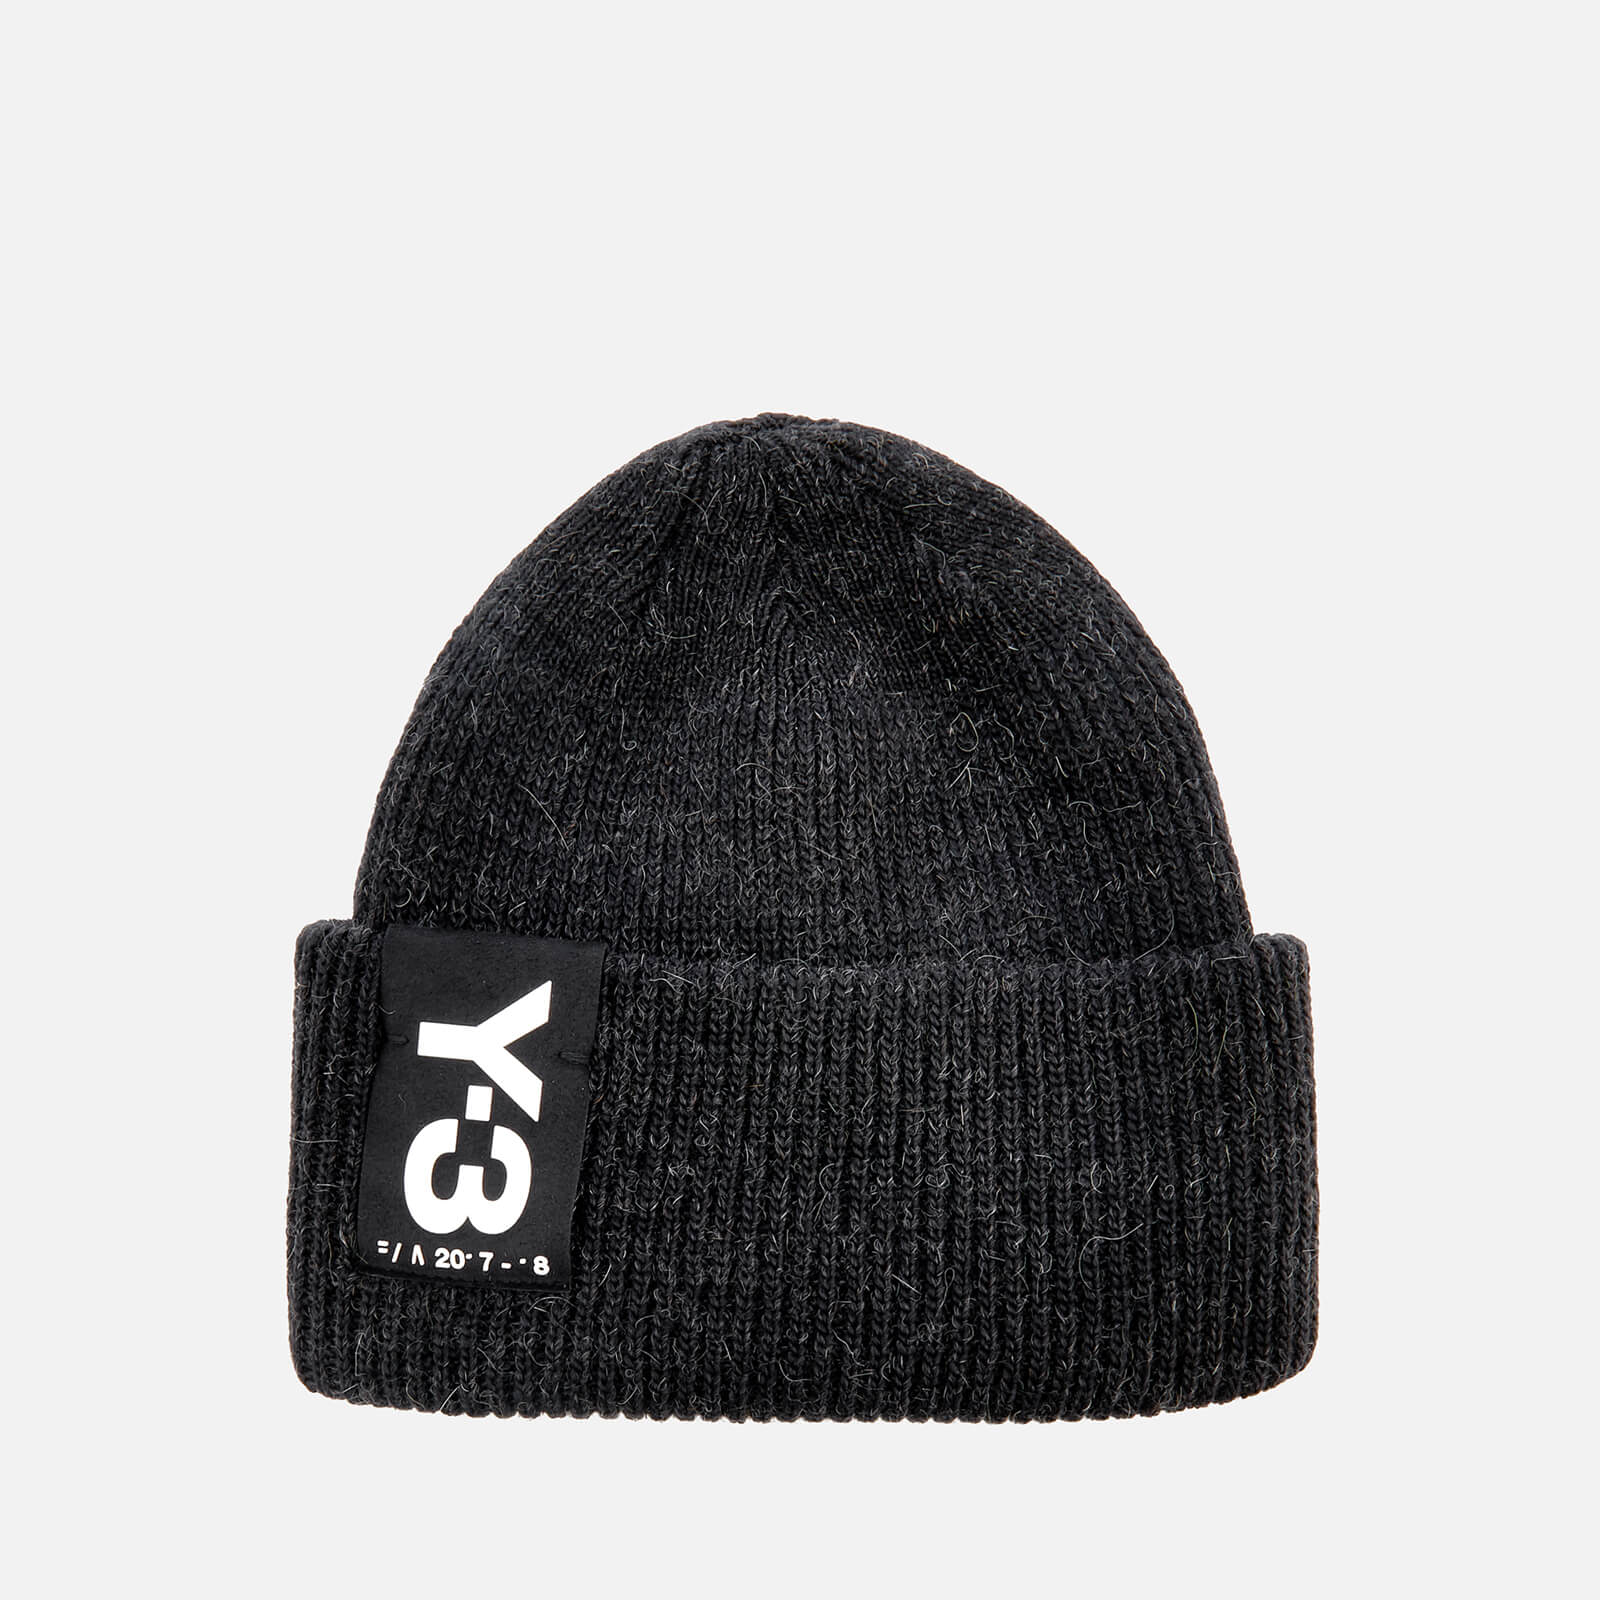 Y-3 Women s Badge Beanie - Black - Free UK Delivery over £50 8d65f8b726